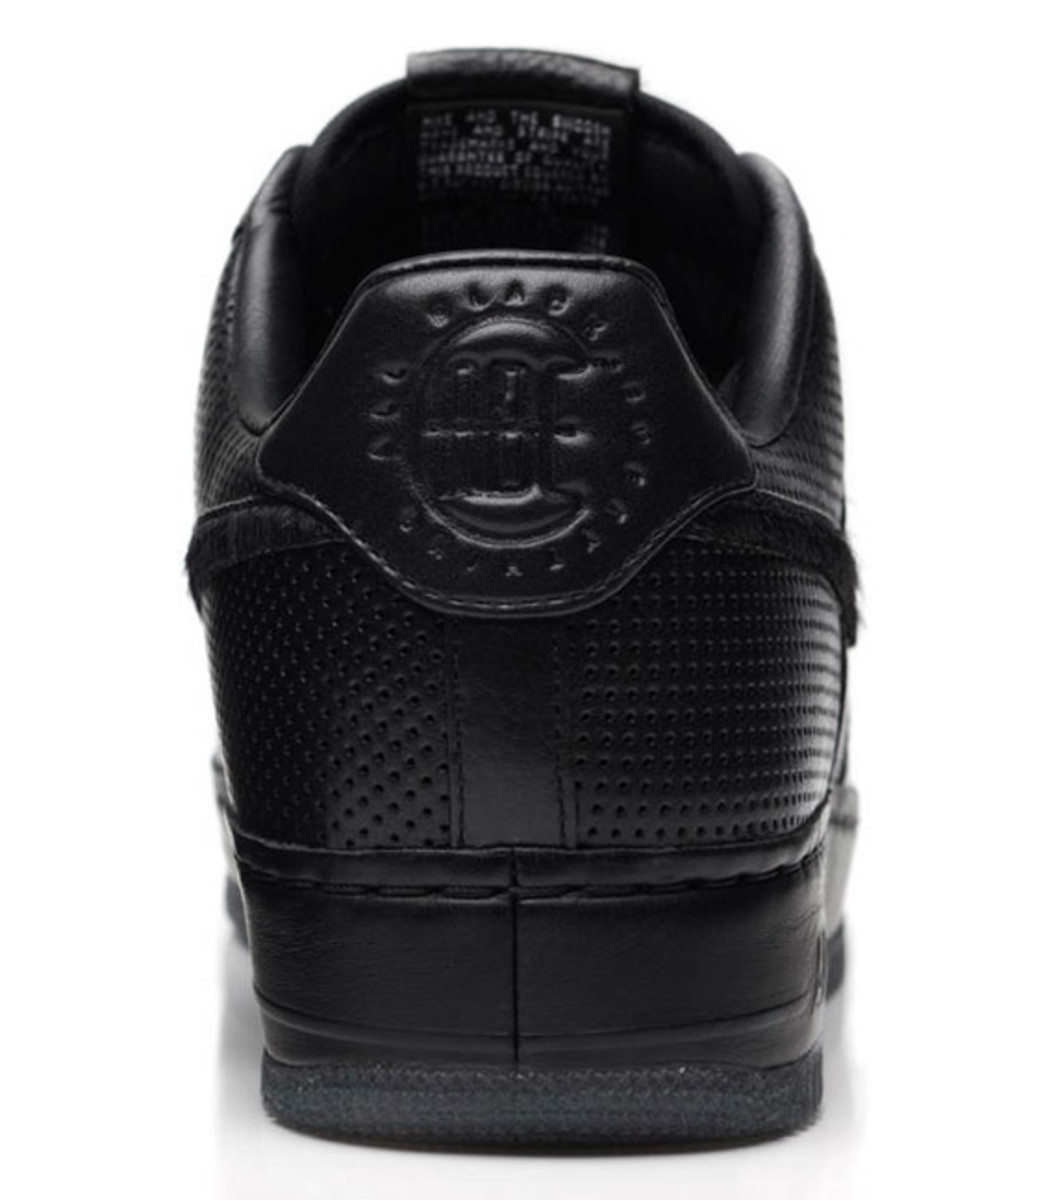 jay-z-nike-air-force-1-all-black-everything-puerto-rico-08